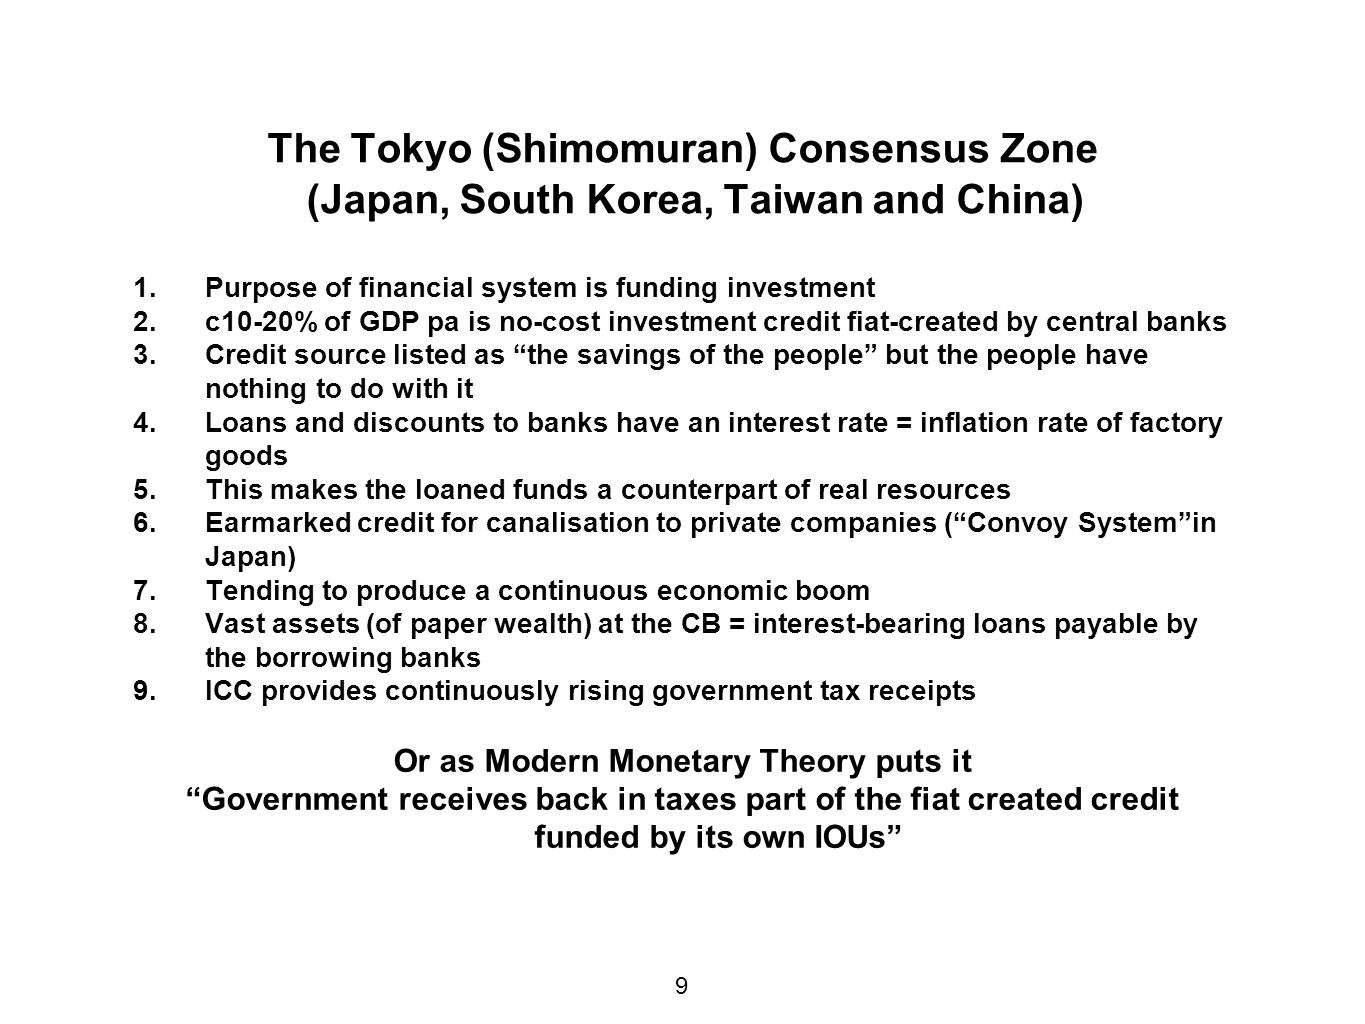 The Key Shimomuran Amendment to Keynes' Savings-Investment Equation Shimomura replaces the Keynesian saving-investment equilibrium condition with the equation S+D = Is+Id That is, Saving (S) plus Debt (D, equal to investment credits arising from investment credit creation at the Bank of Japan) equals Is (Investment financed by saving) plus Id (Investment financed by debt).